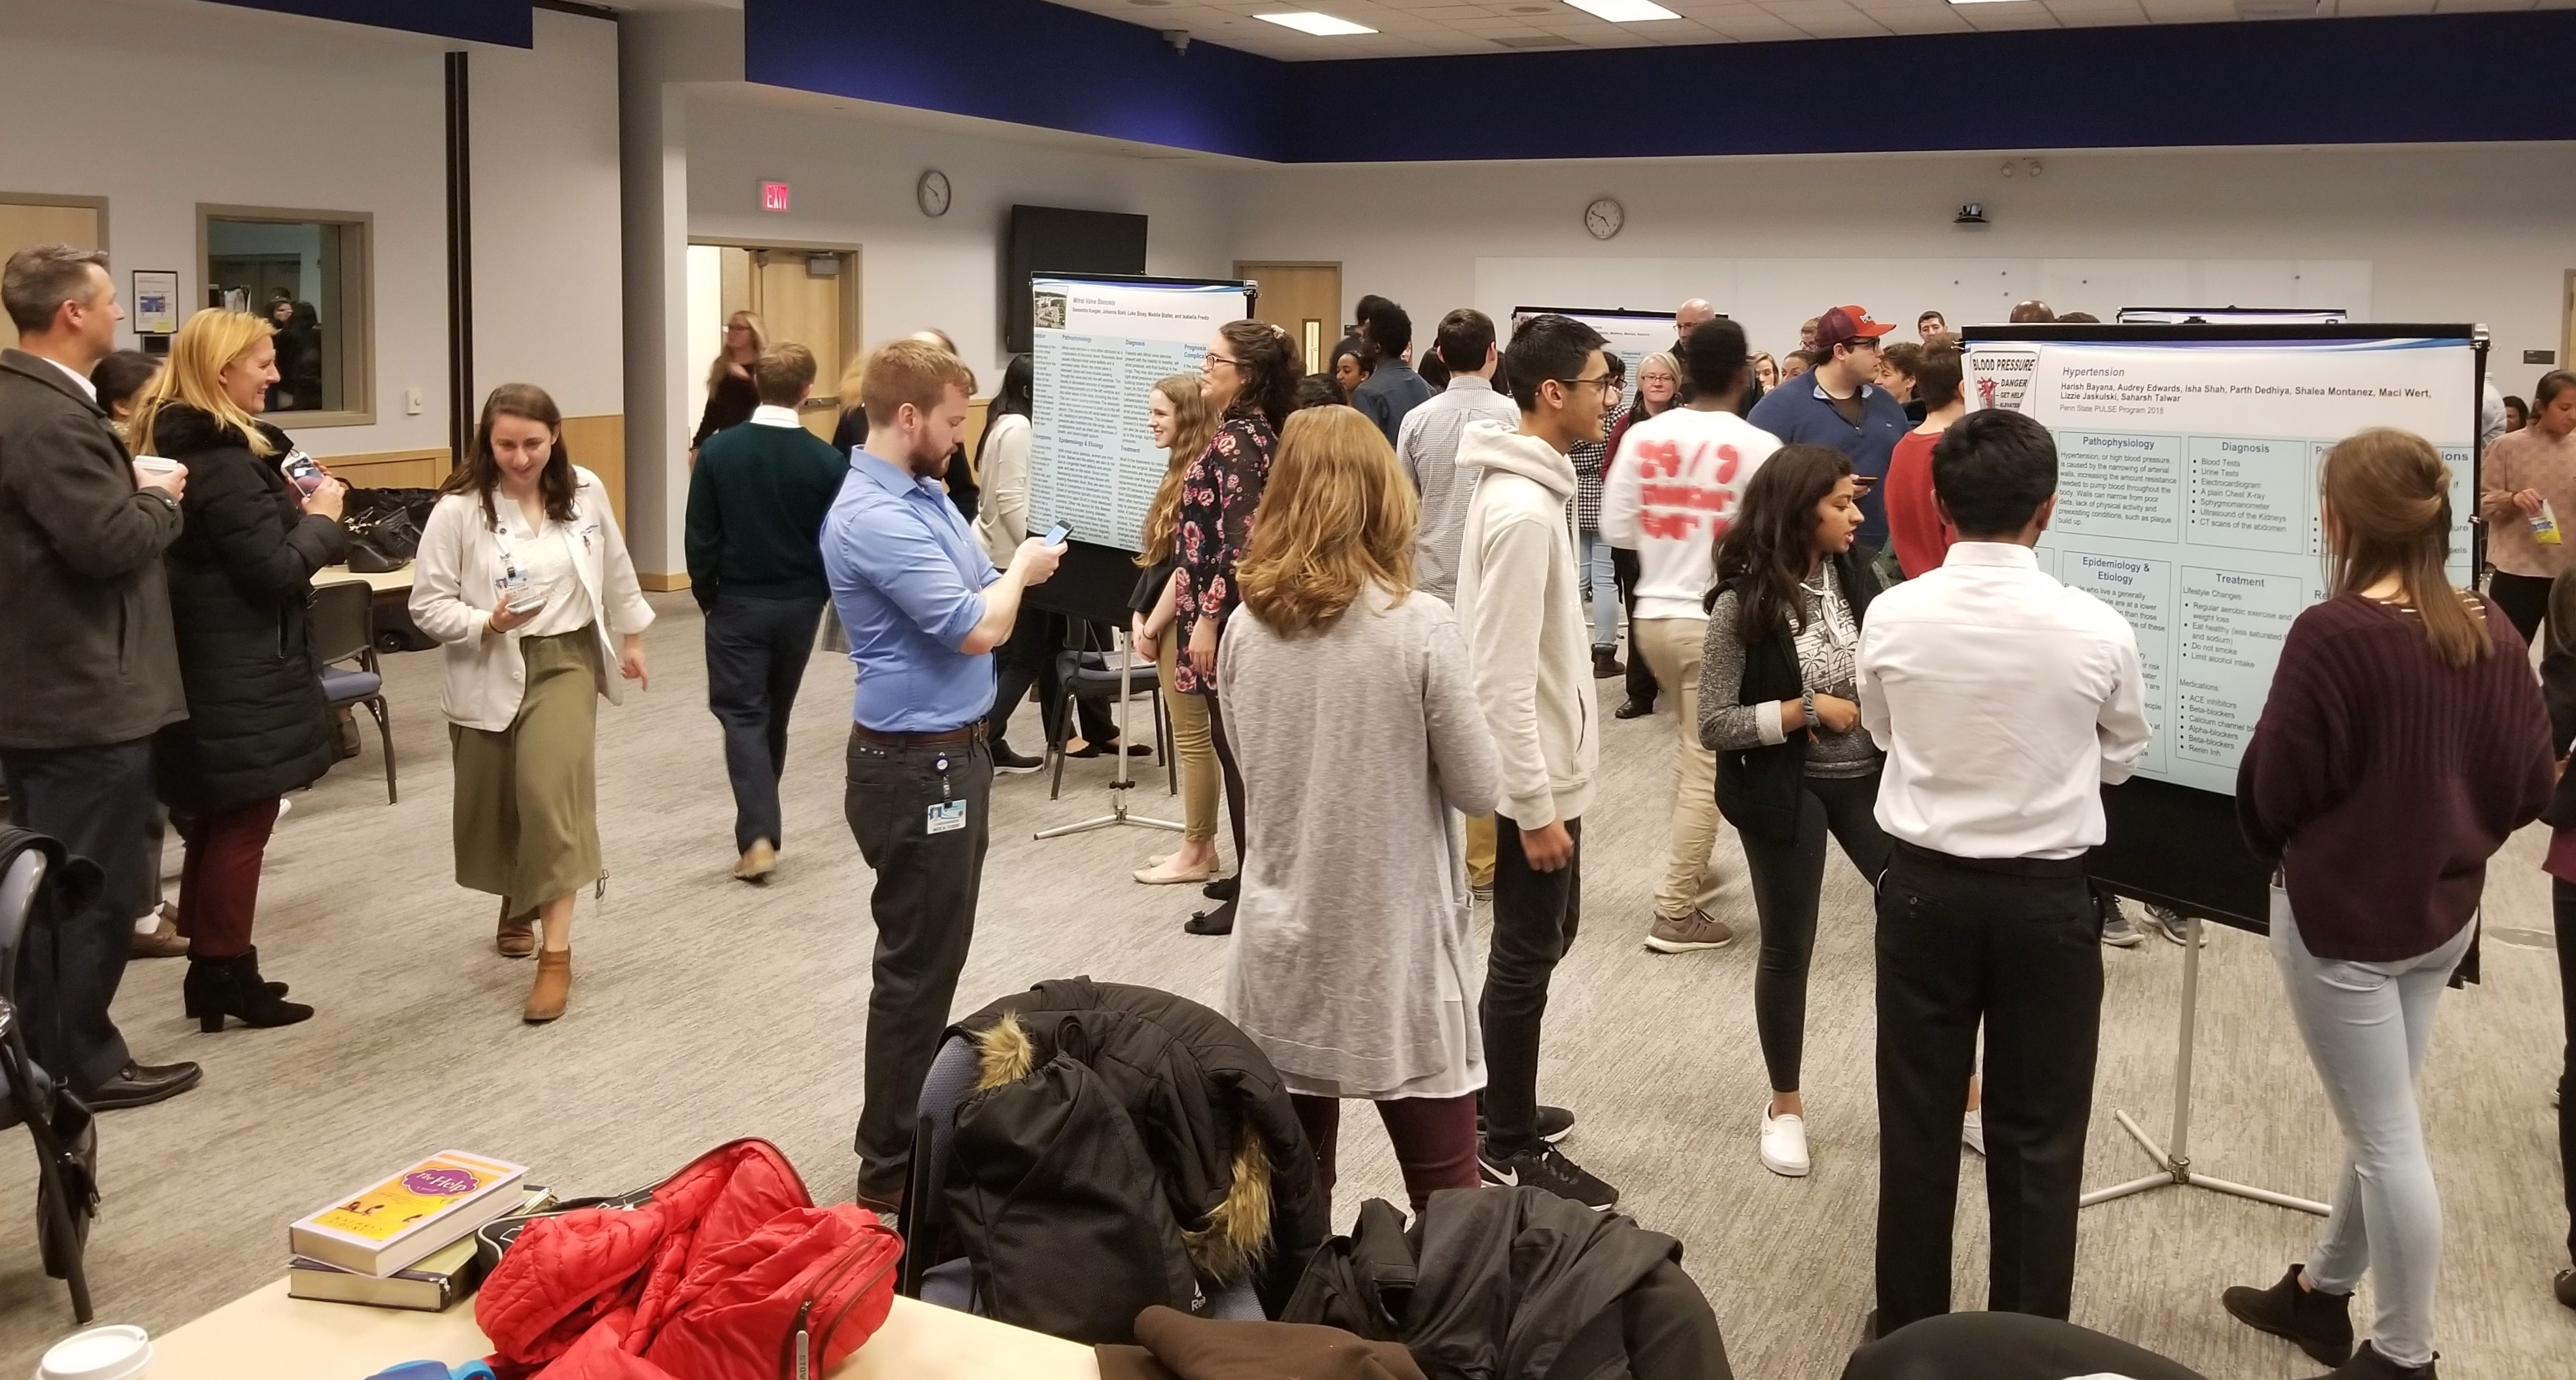 A group of approximately 40 high school students and adults look at different poster presentations during Penn State College of Medicine's PULSE program in 2018. The posters feature cardiology topics and are printed on large sheets of vinyl mounted on screens. The group is in a large conference room. A table and chairs with winter coats hanging on them are in the foreground.